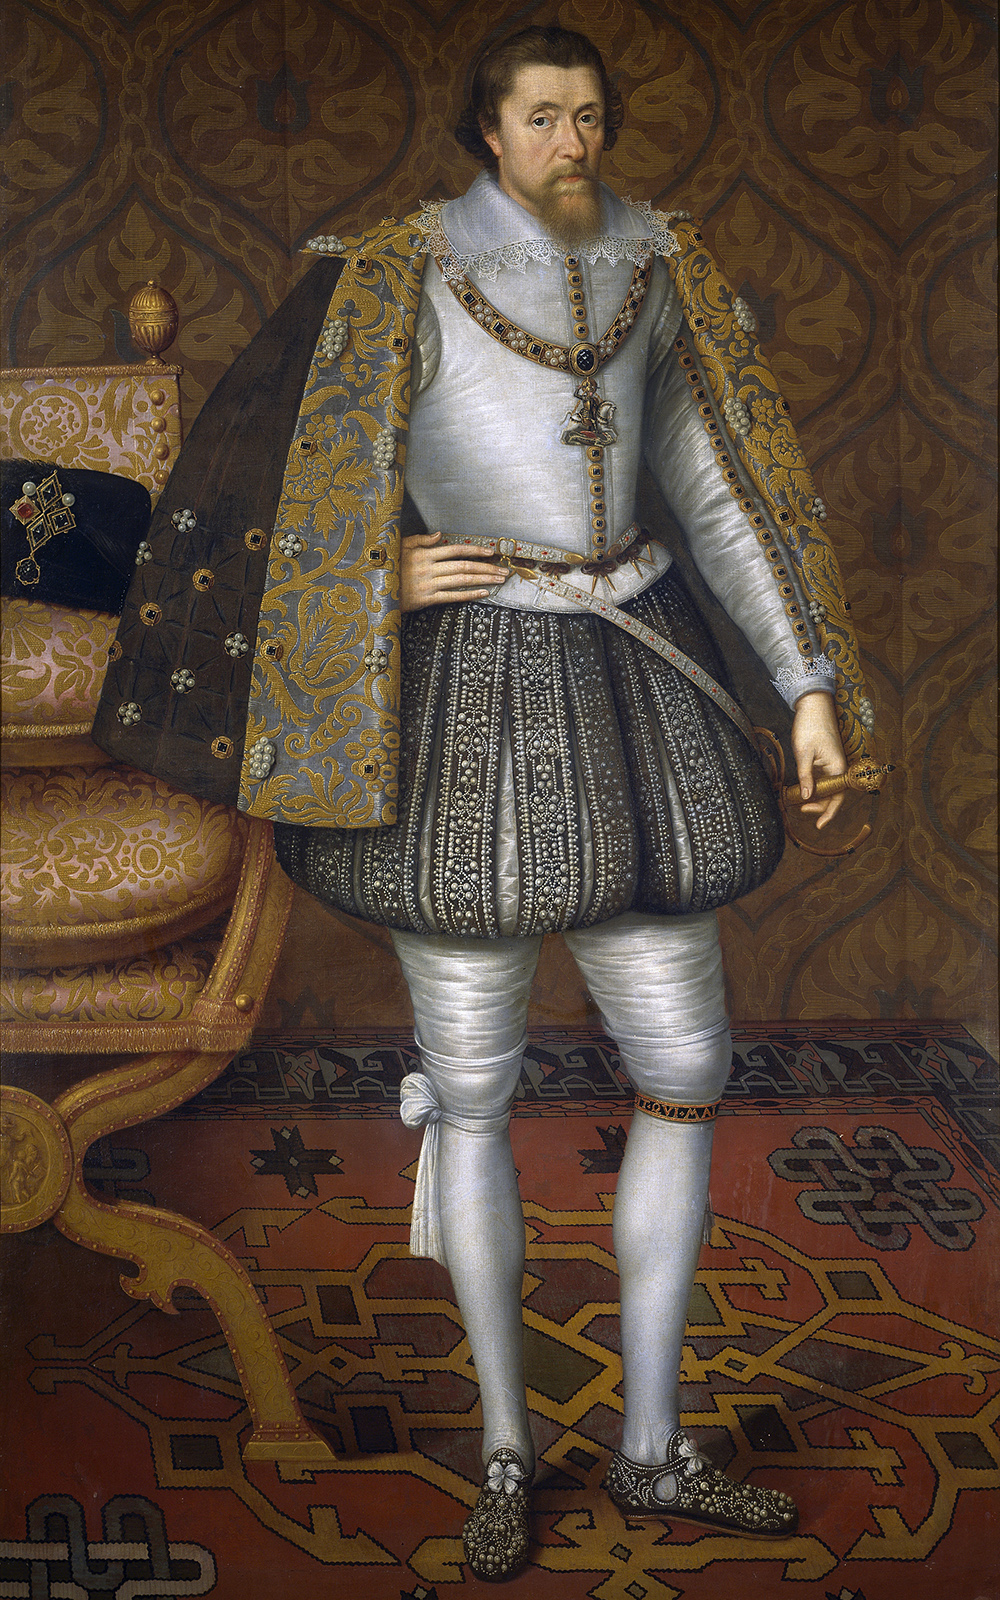 Painting of King James I of England.